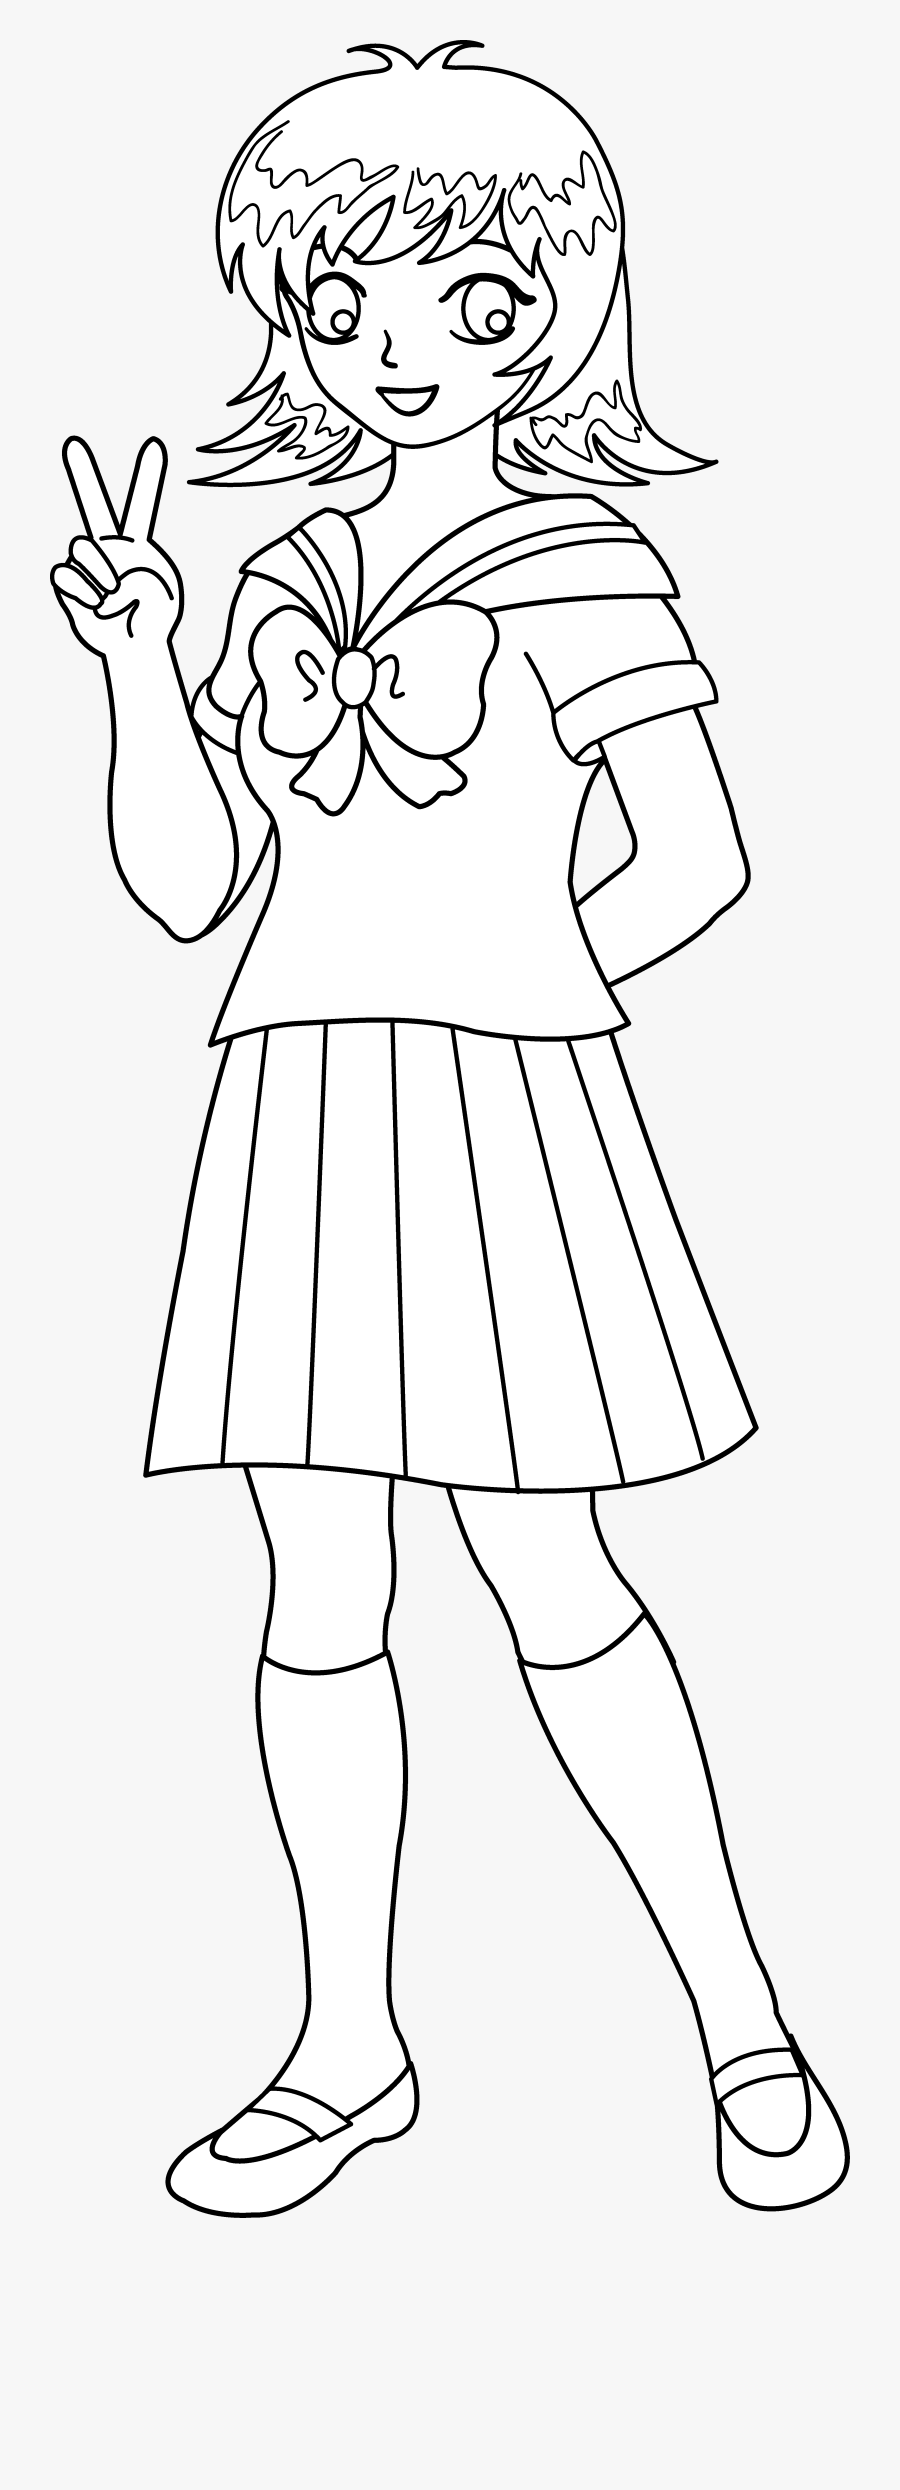 Anime Clipart Black And White - Clipart Black And White Anime School Uniform, Transparent Clipart